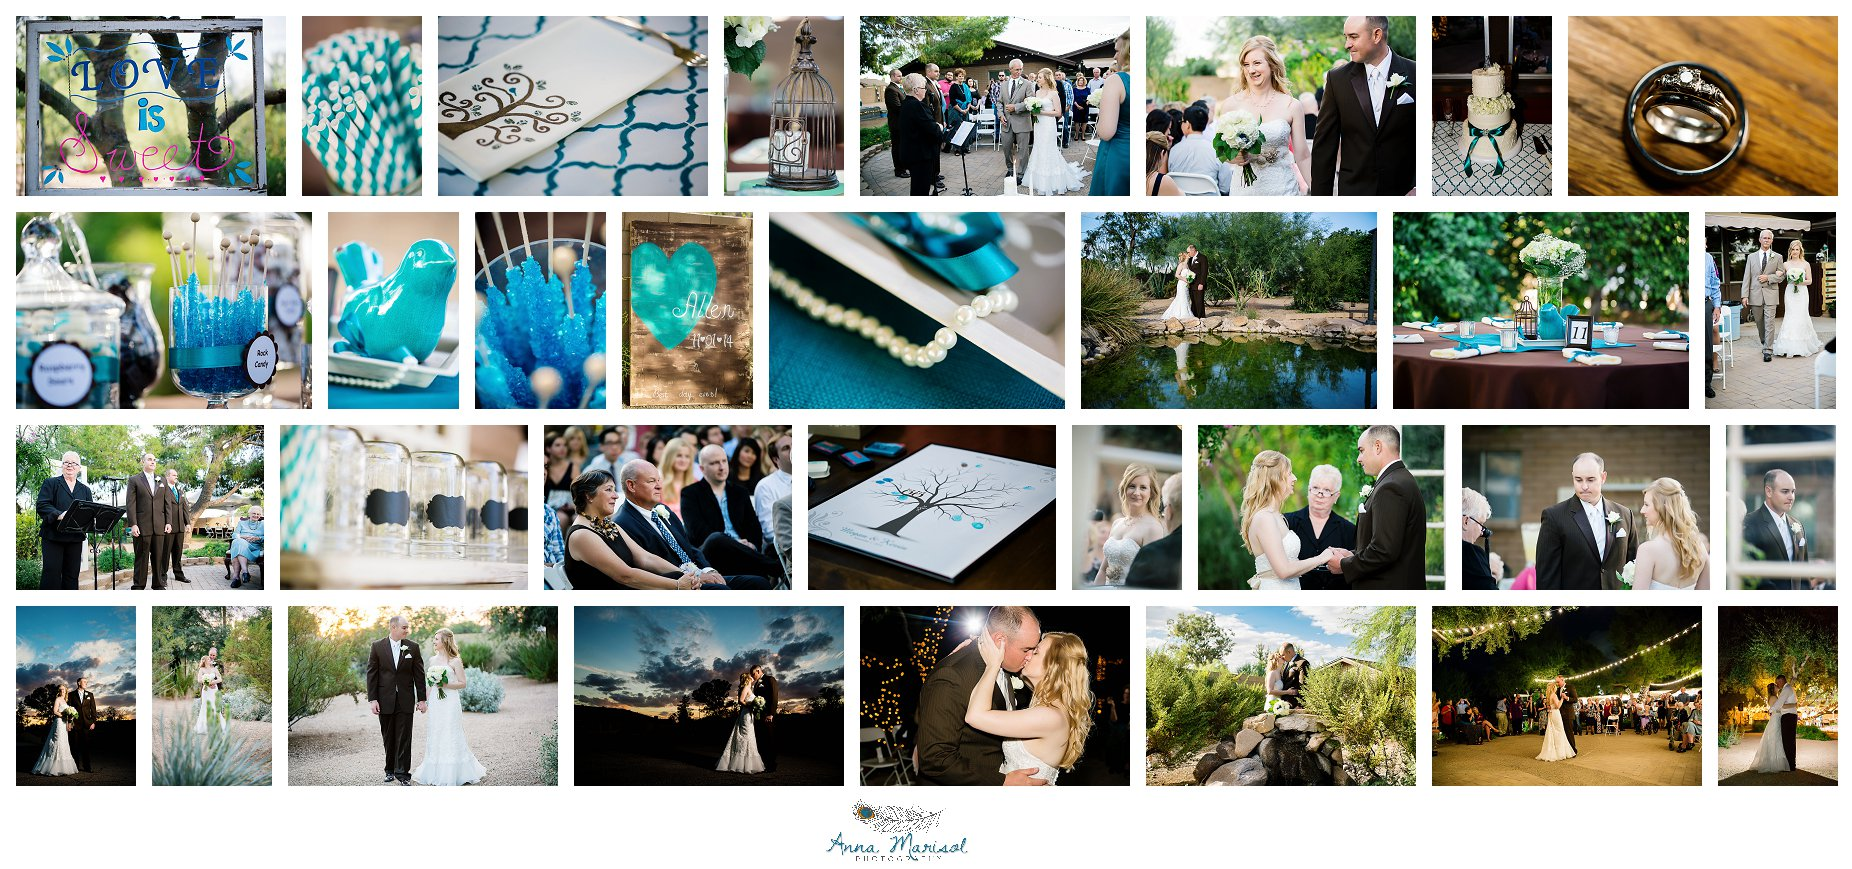 Glendale Backyard Wedding